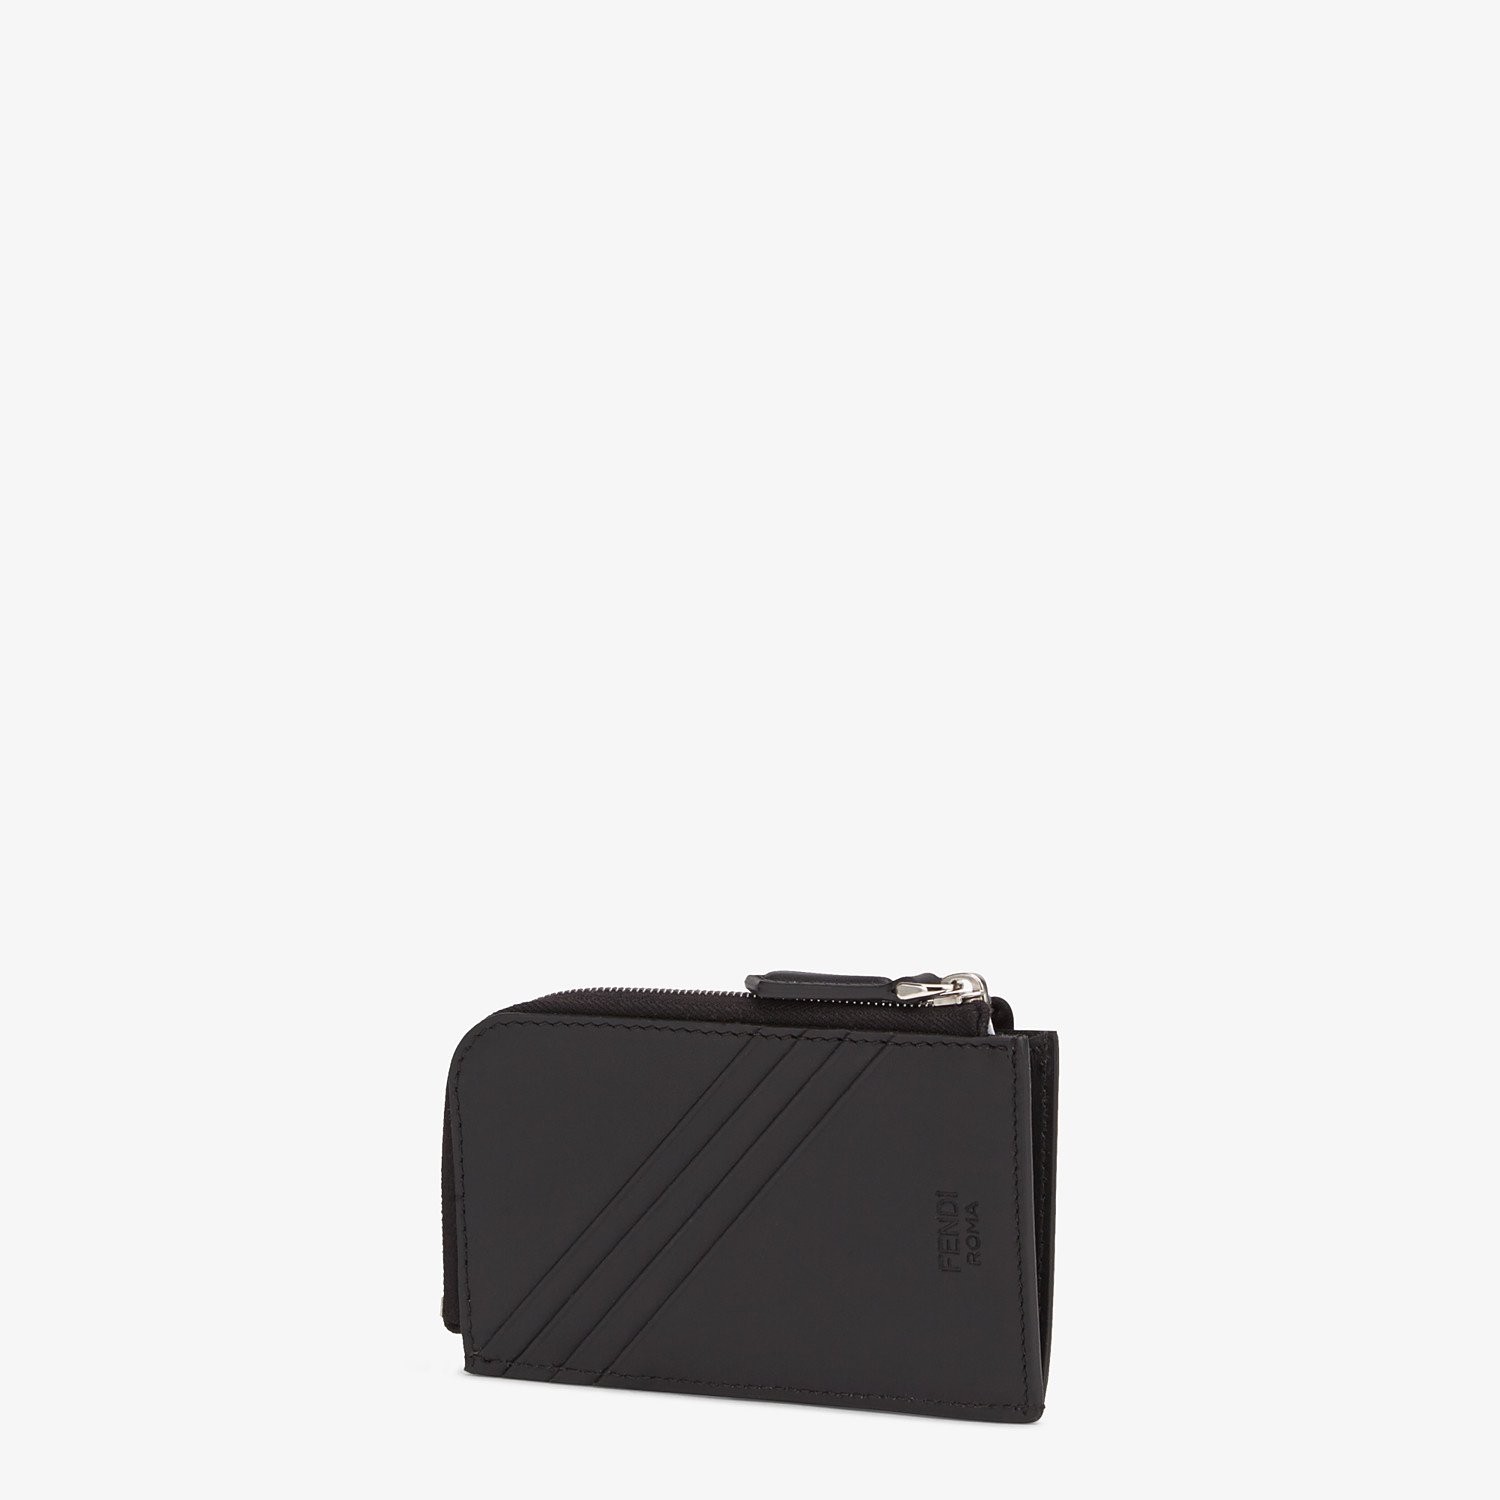 FENDI COIN PURSE - Black leather pouch - view 2 detail